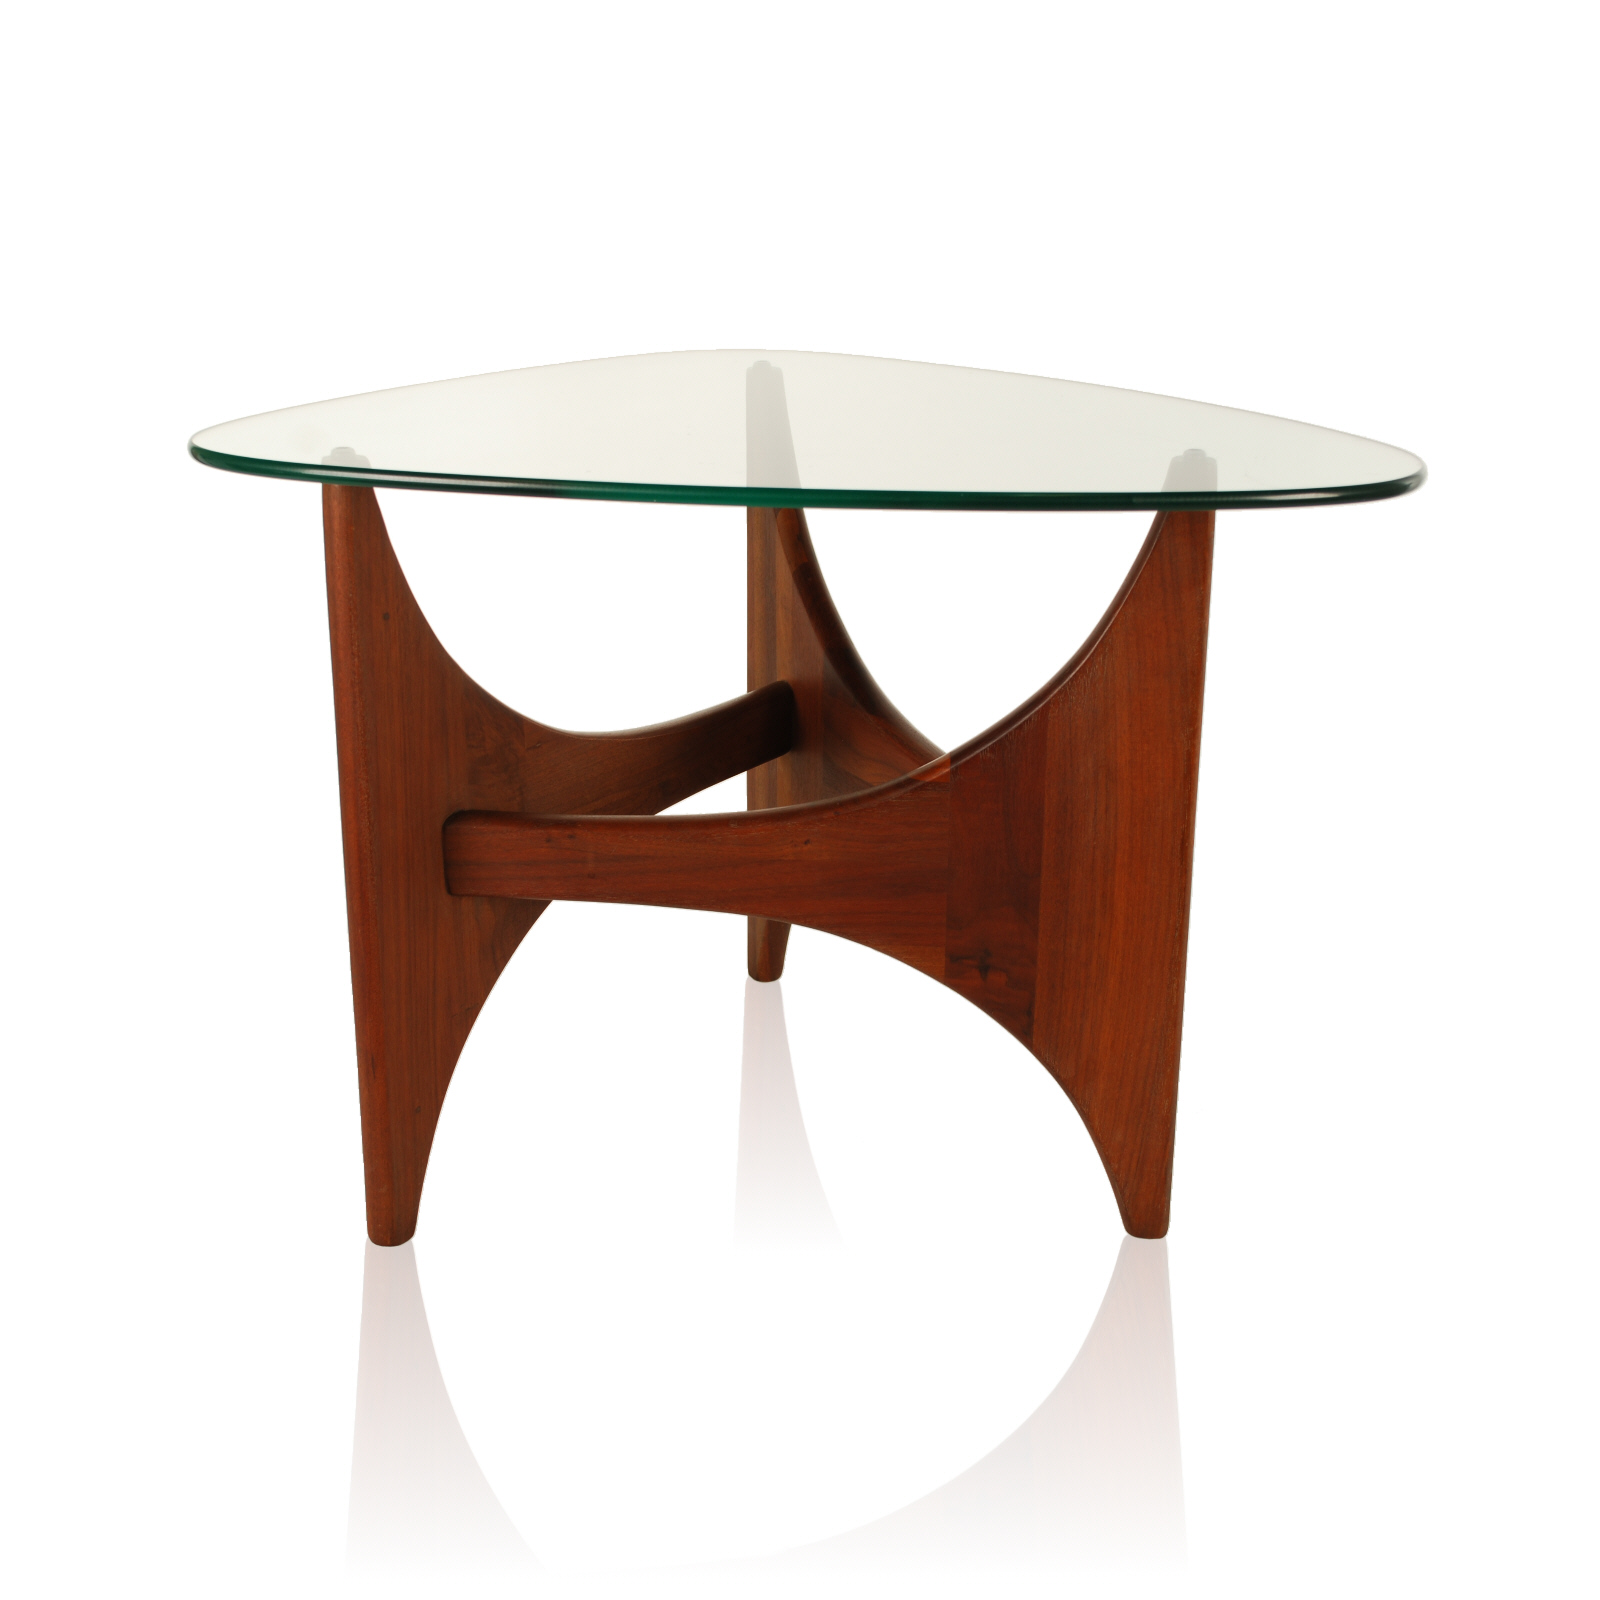 probably terrific best triangular end table wood mira road charming triangle glass top modern side with unique brown furniture inspiration wooden base furnishing ideas fetching